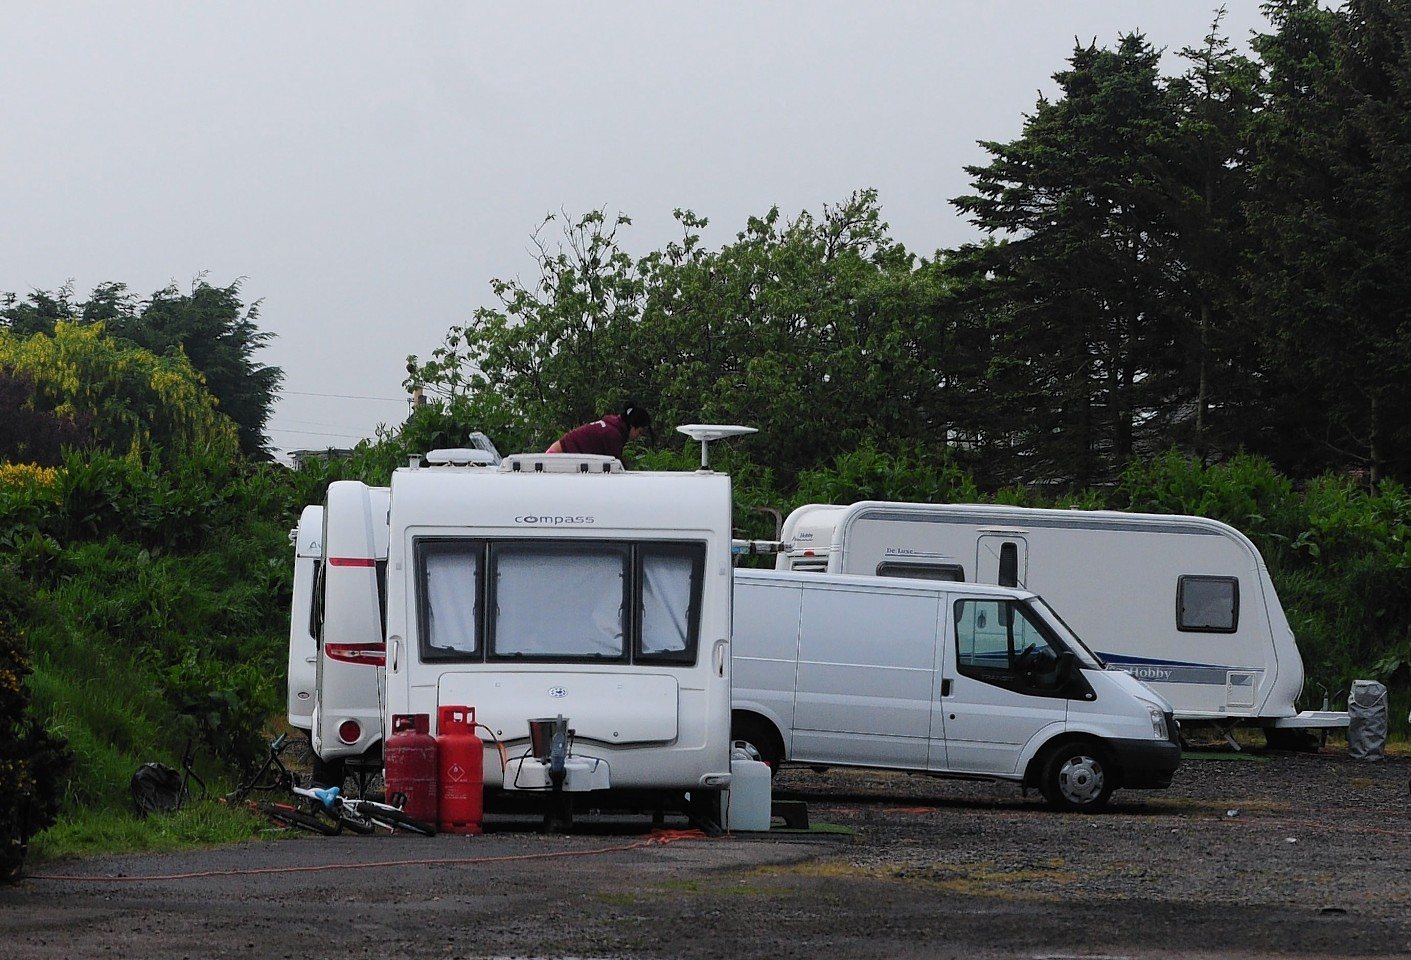 Travellers set up camp near Royal Aberdeen Golf Club shortly before it hosted last year's Scottish Open